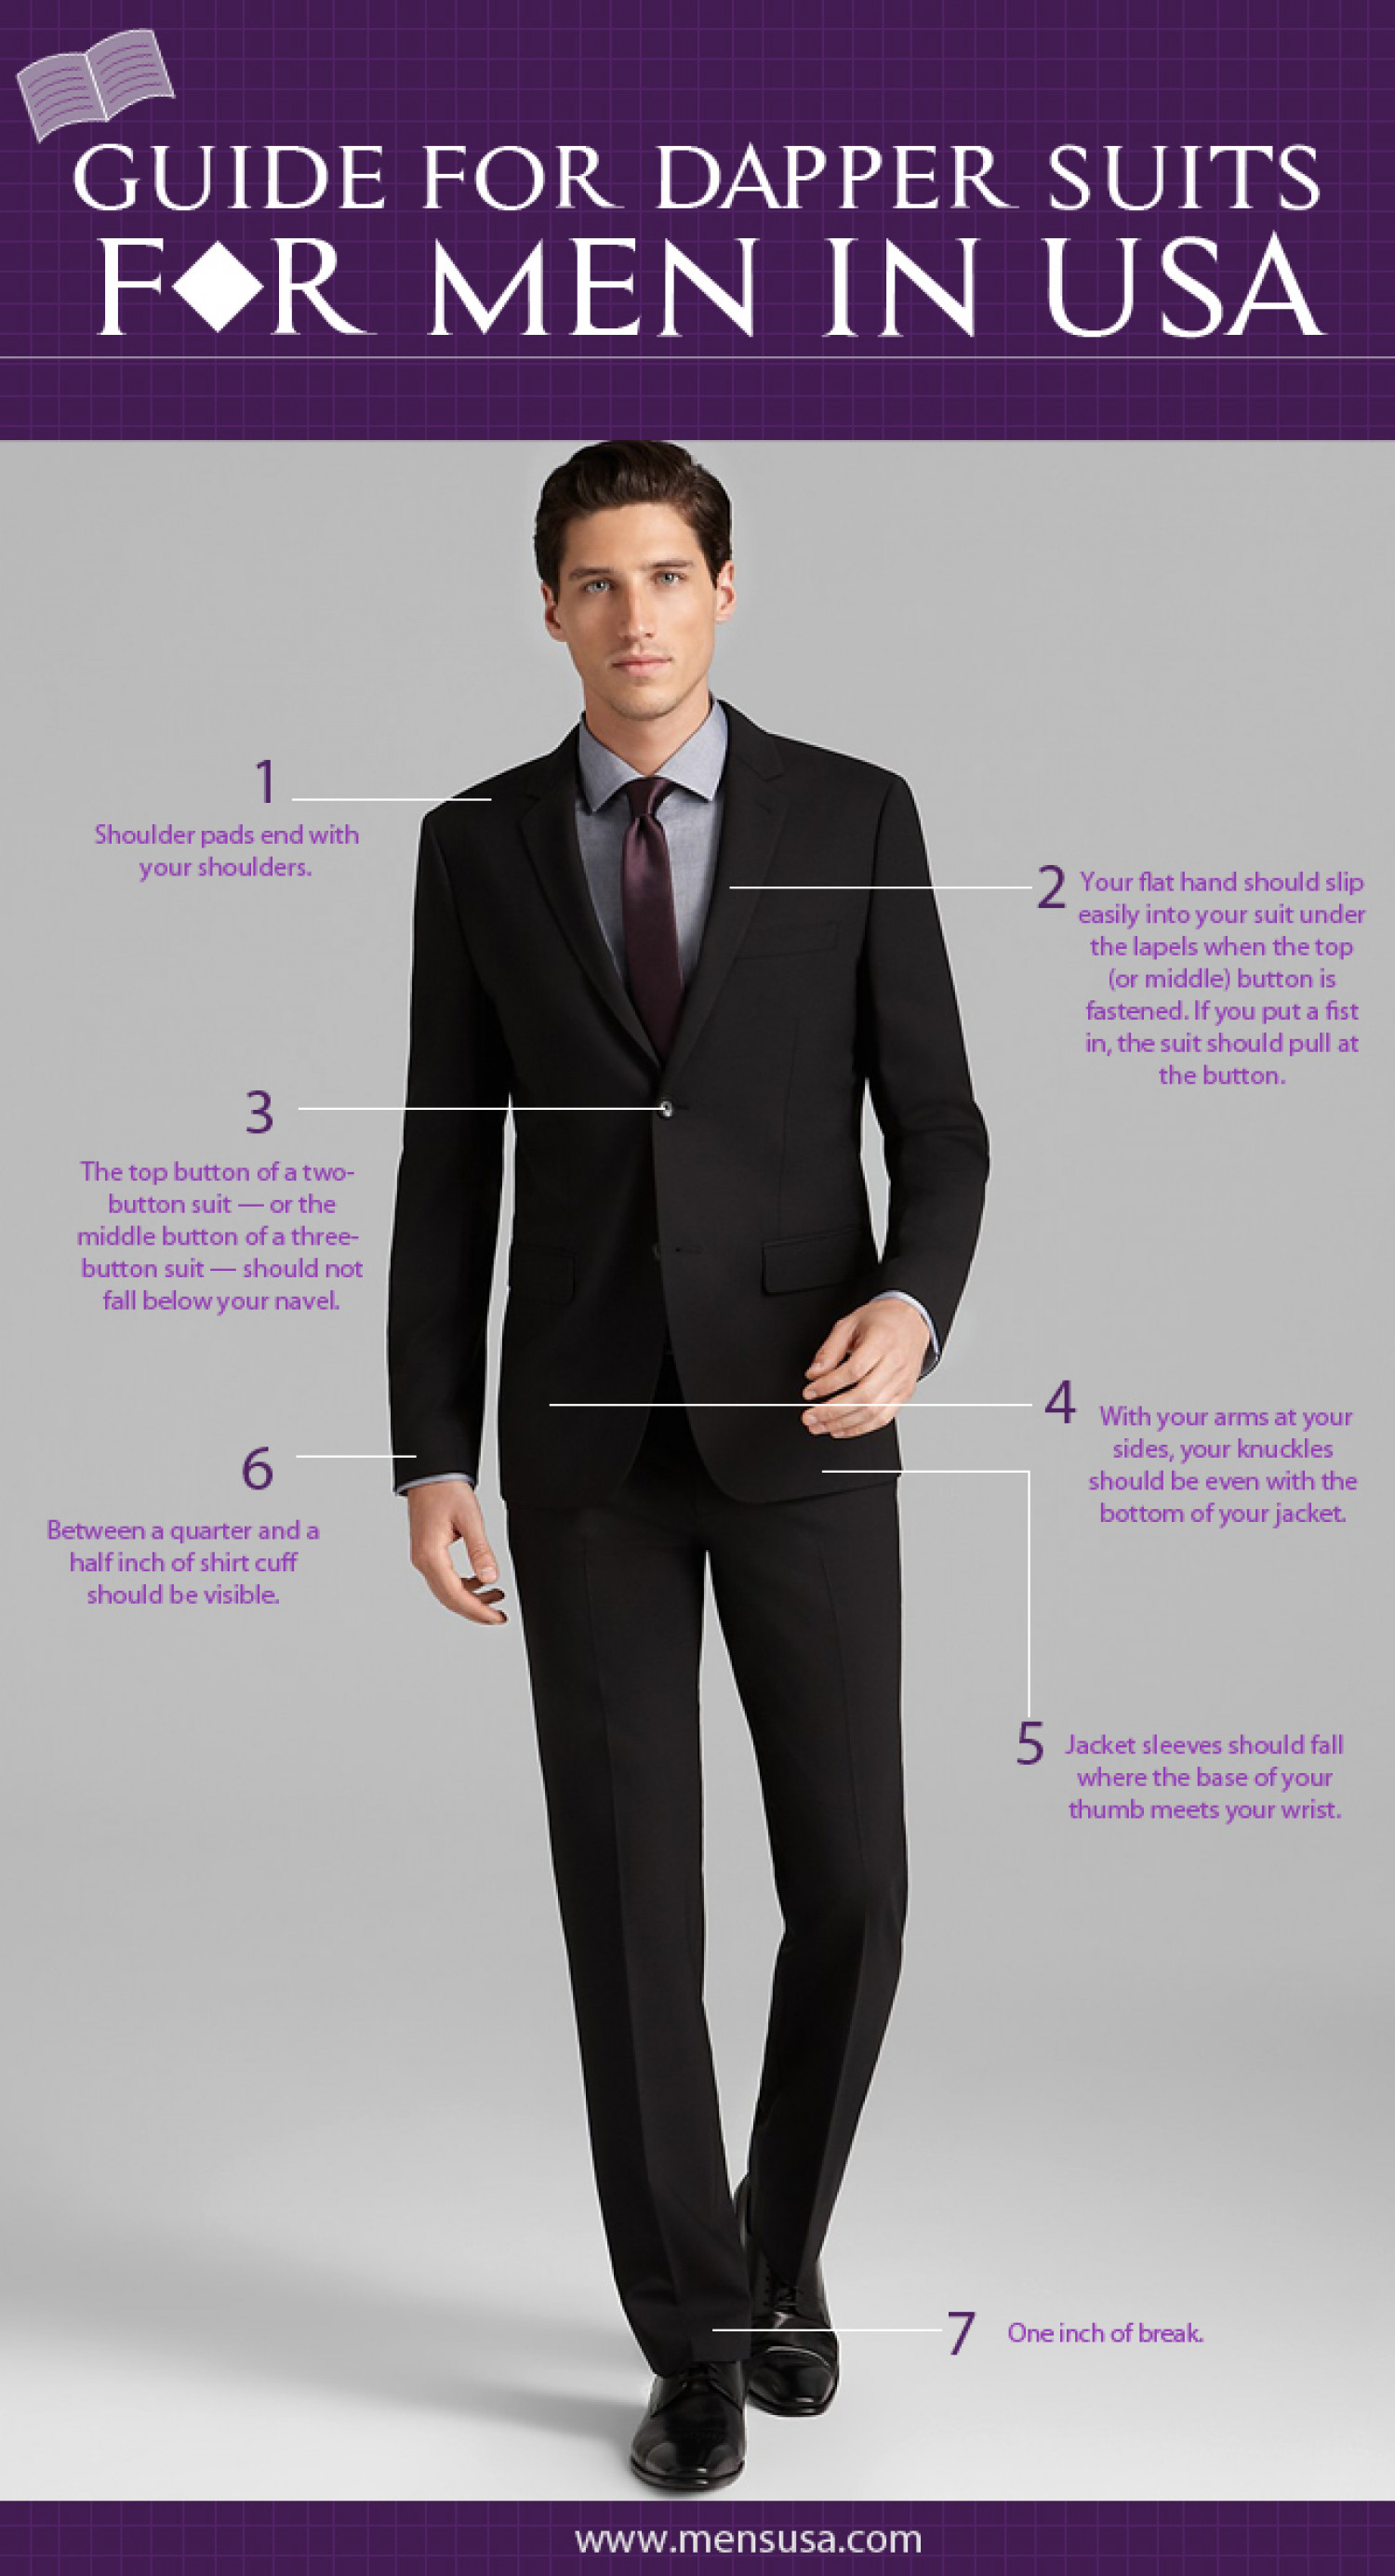 Guide for dapper look suit for men in usa Infographic